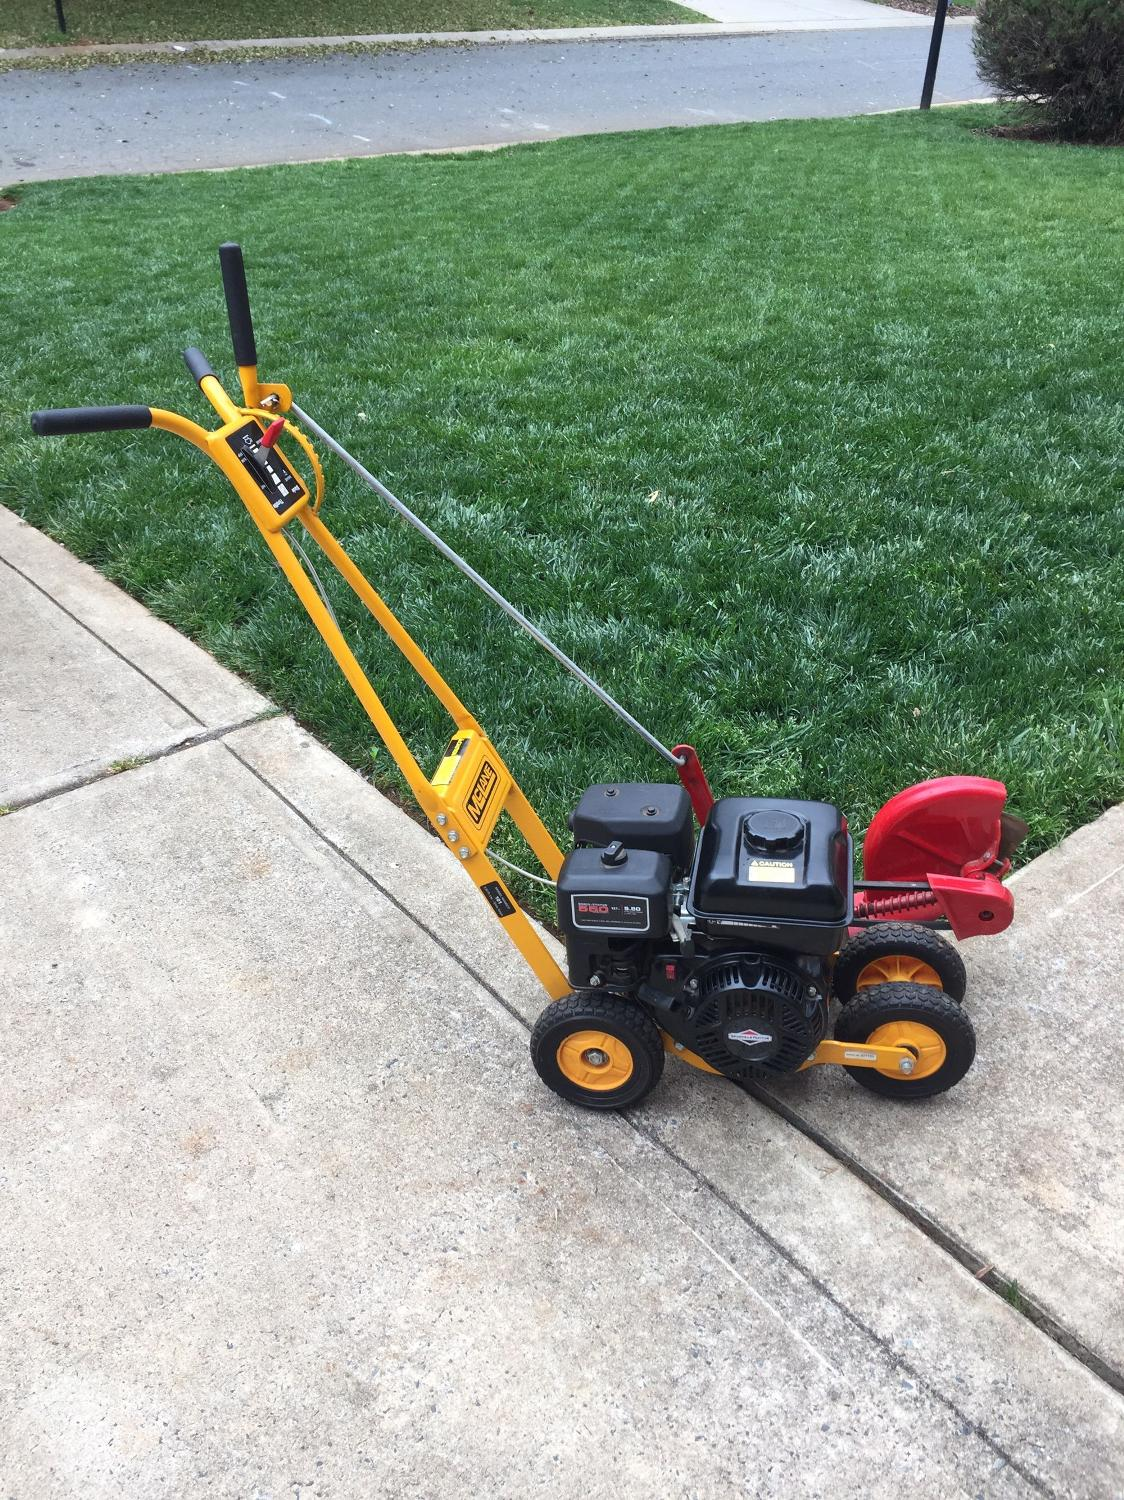 Find More Mclane Yard Edger For Sale At Up To 90 Off